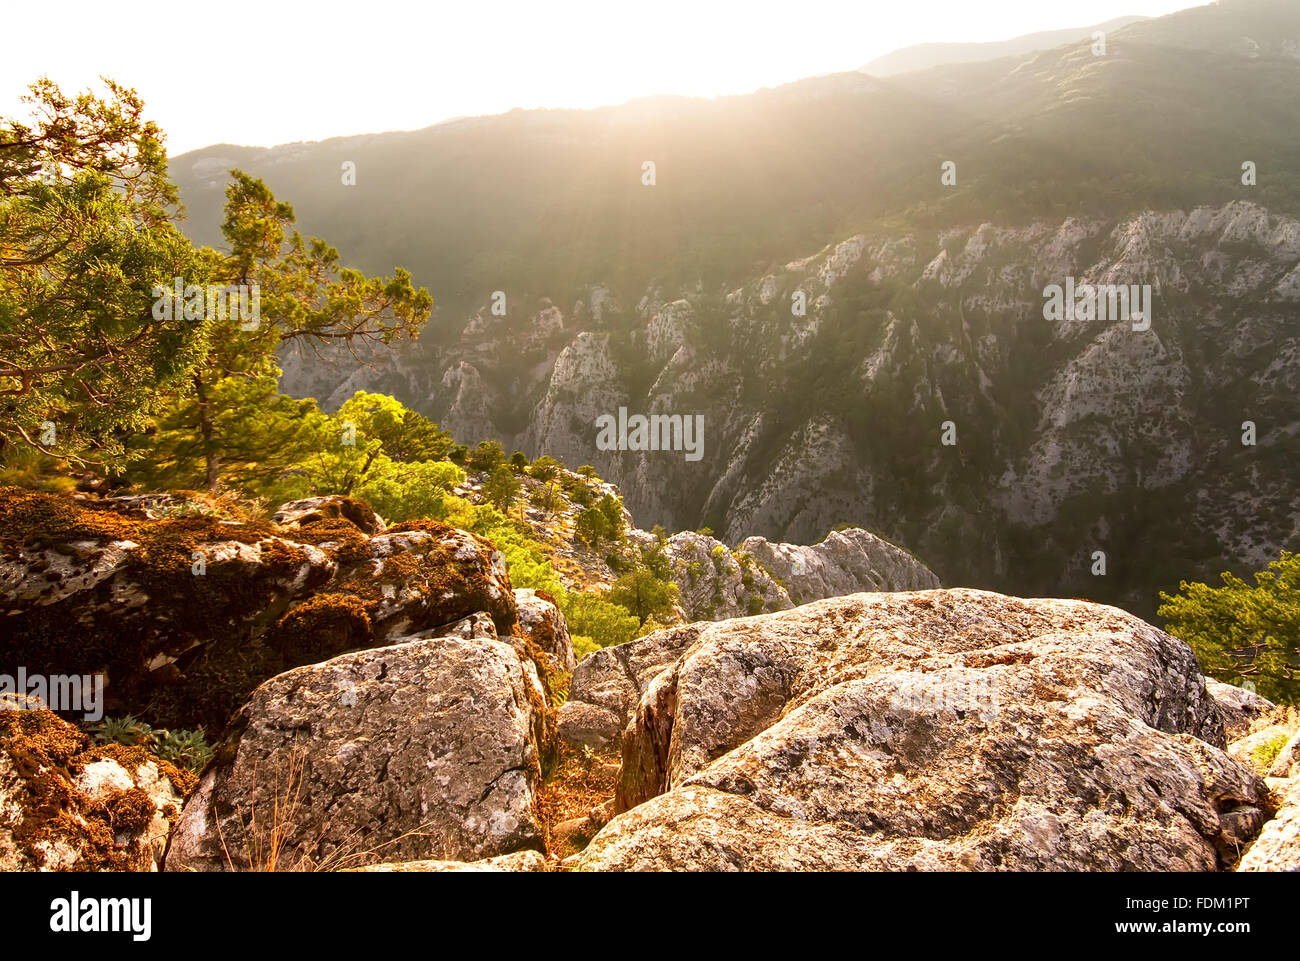 Ida Mountain, Altinoluk, Balikesir, Turkey - Stock Image